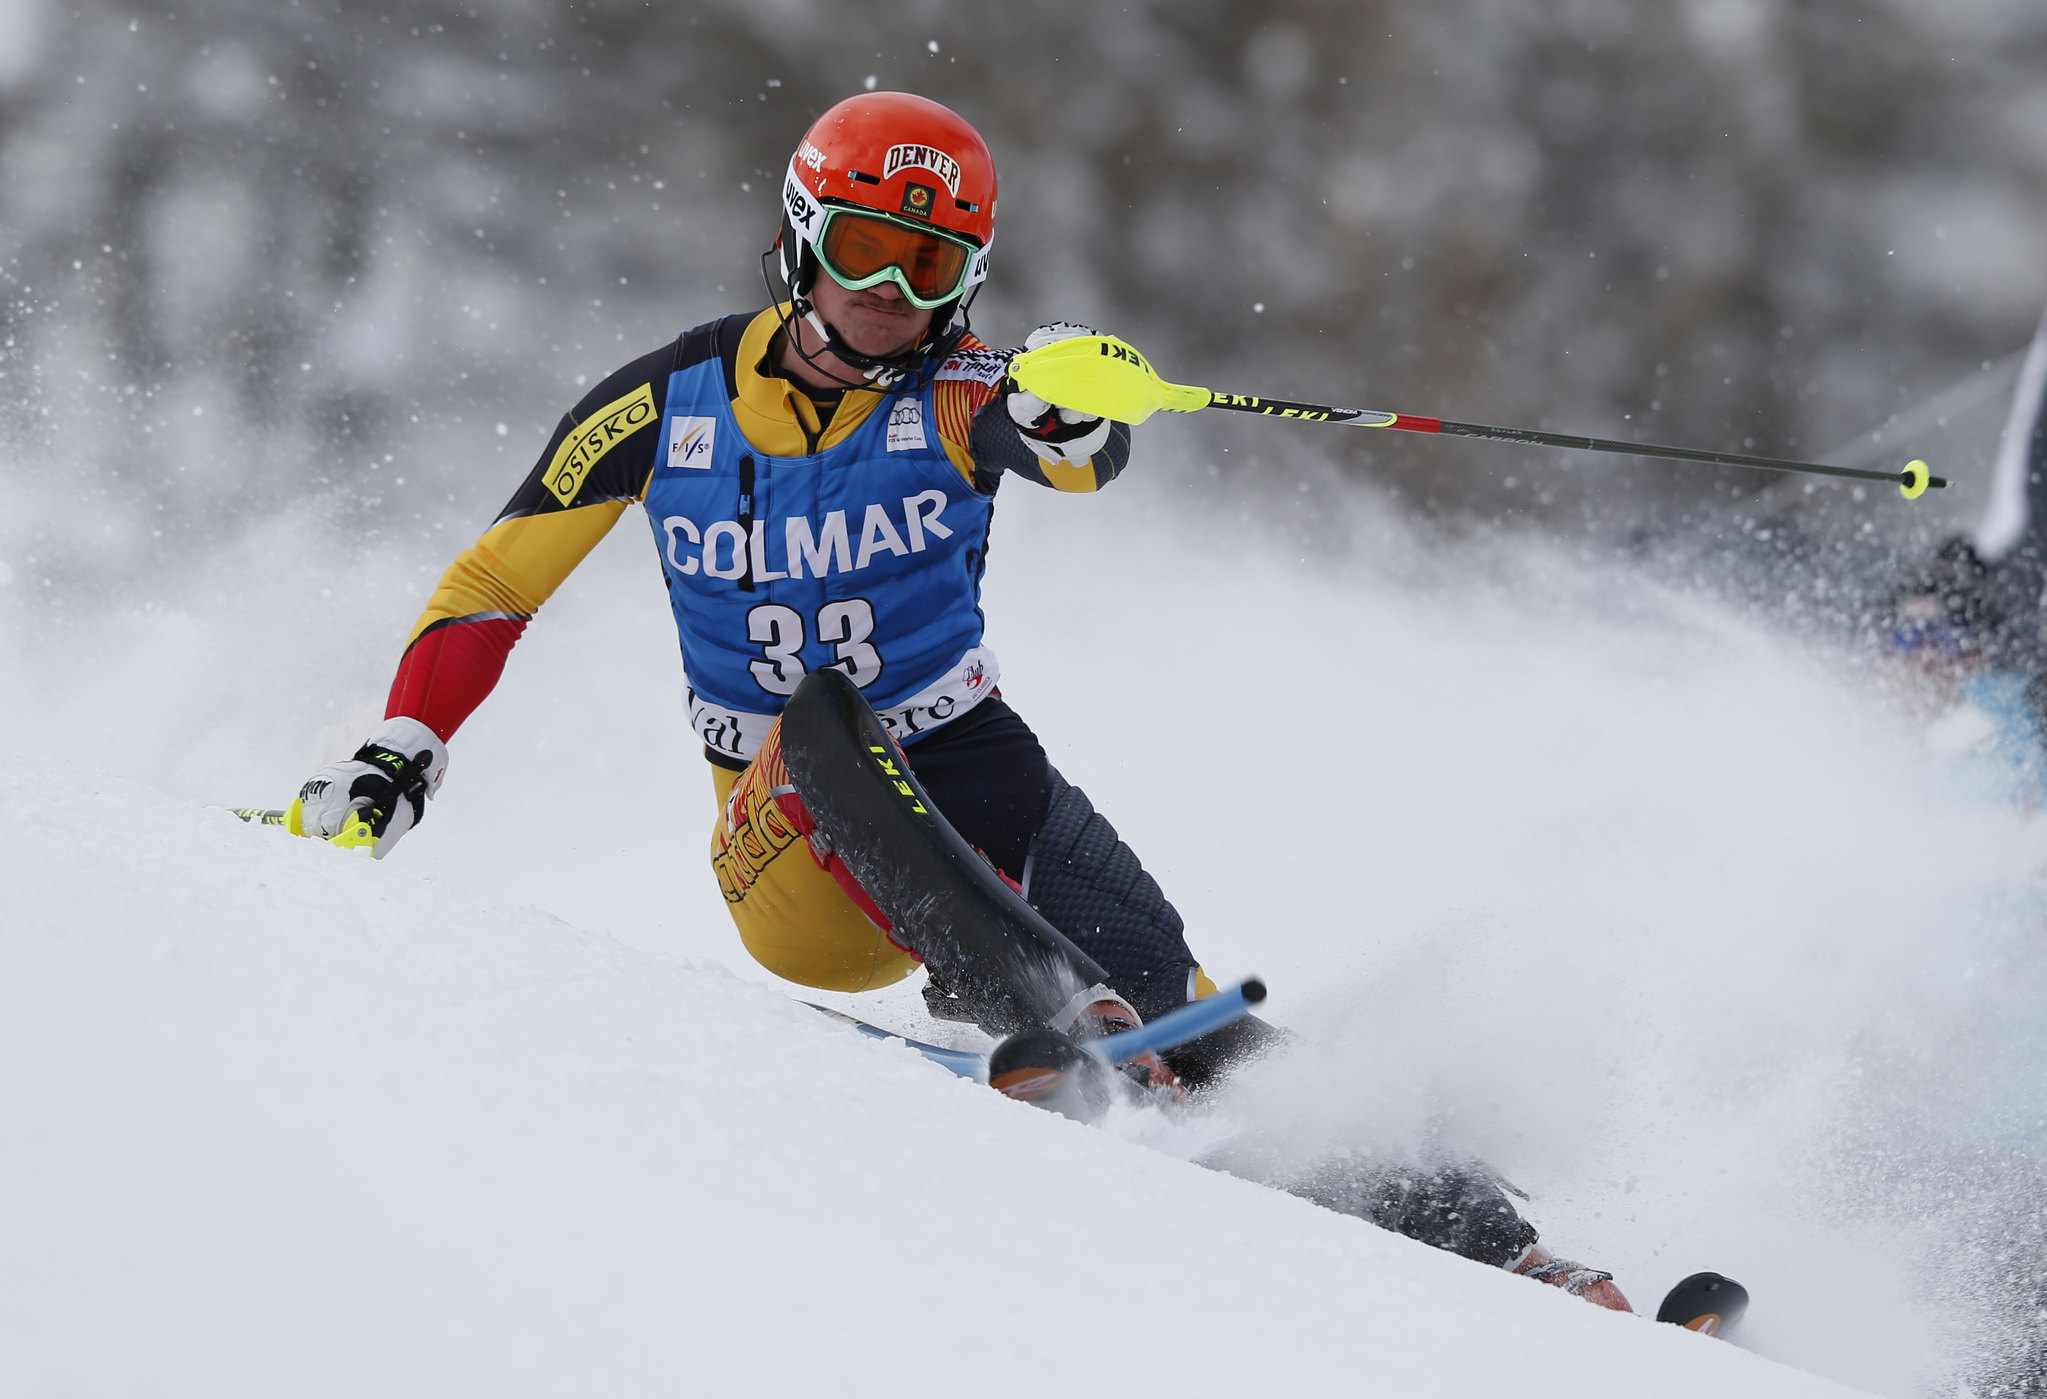 Trevor Philp races slalom in Val d'Isère, France.